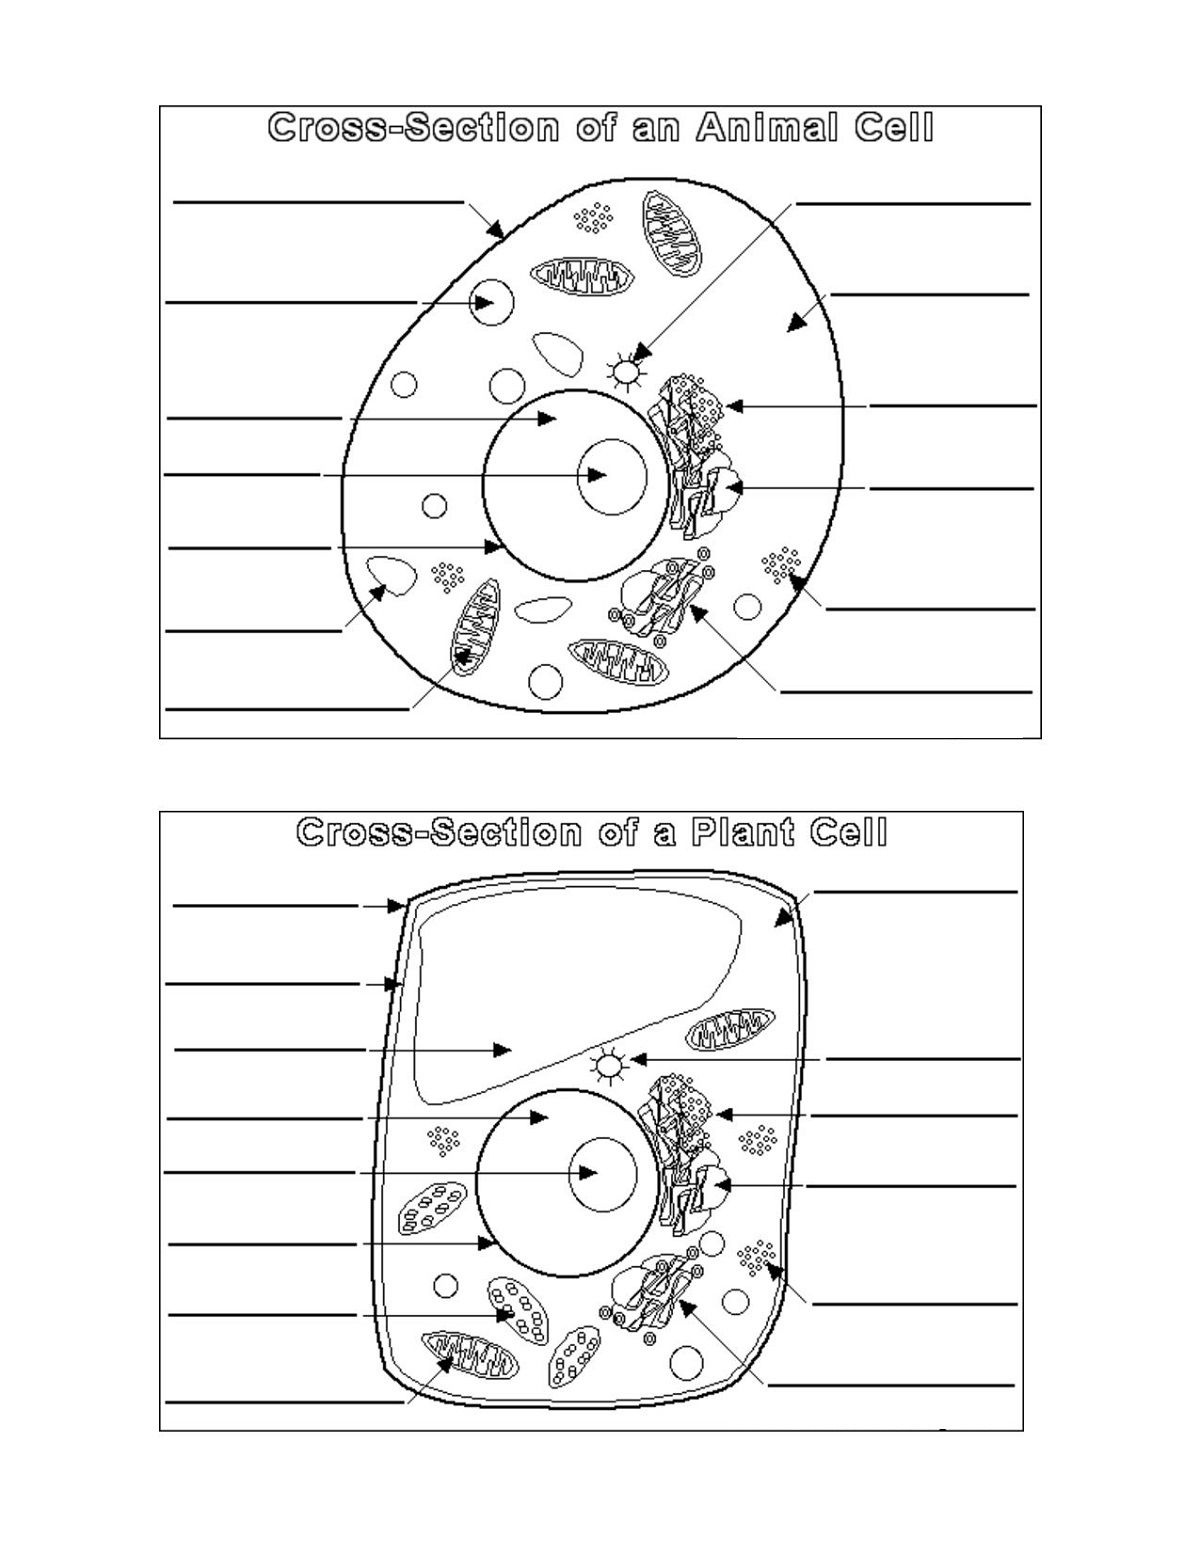 Plant And Animal Cell Diagram Blank | Printable Diagram | Printable - Free Printable Cell Worksheets